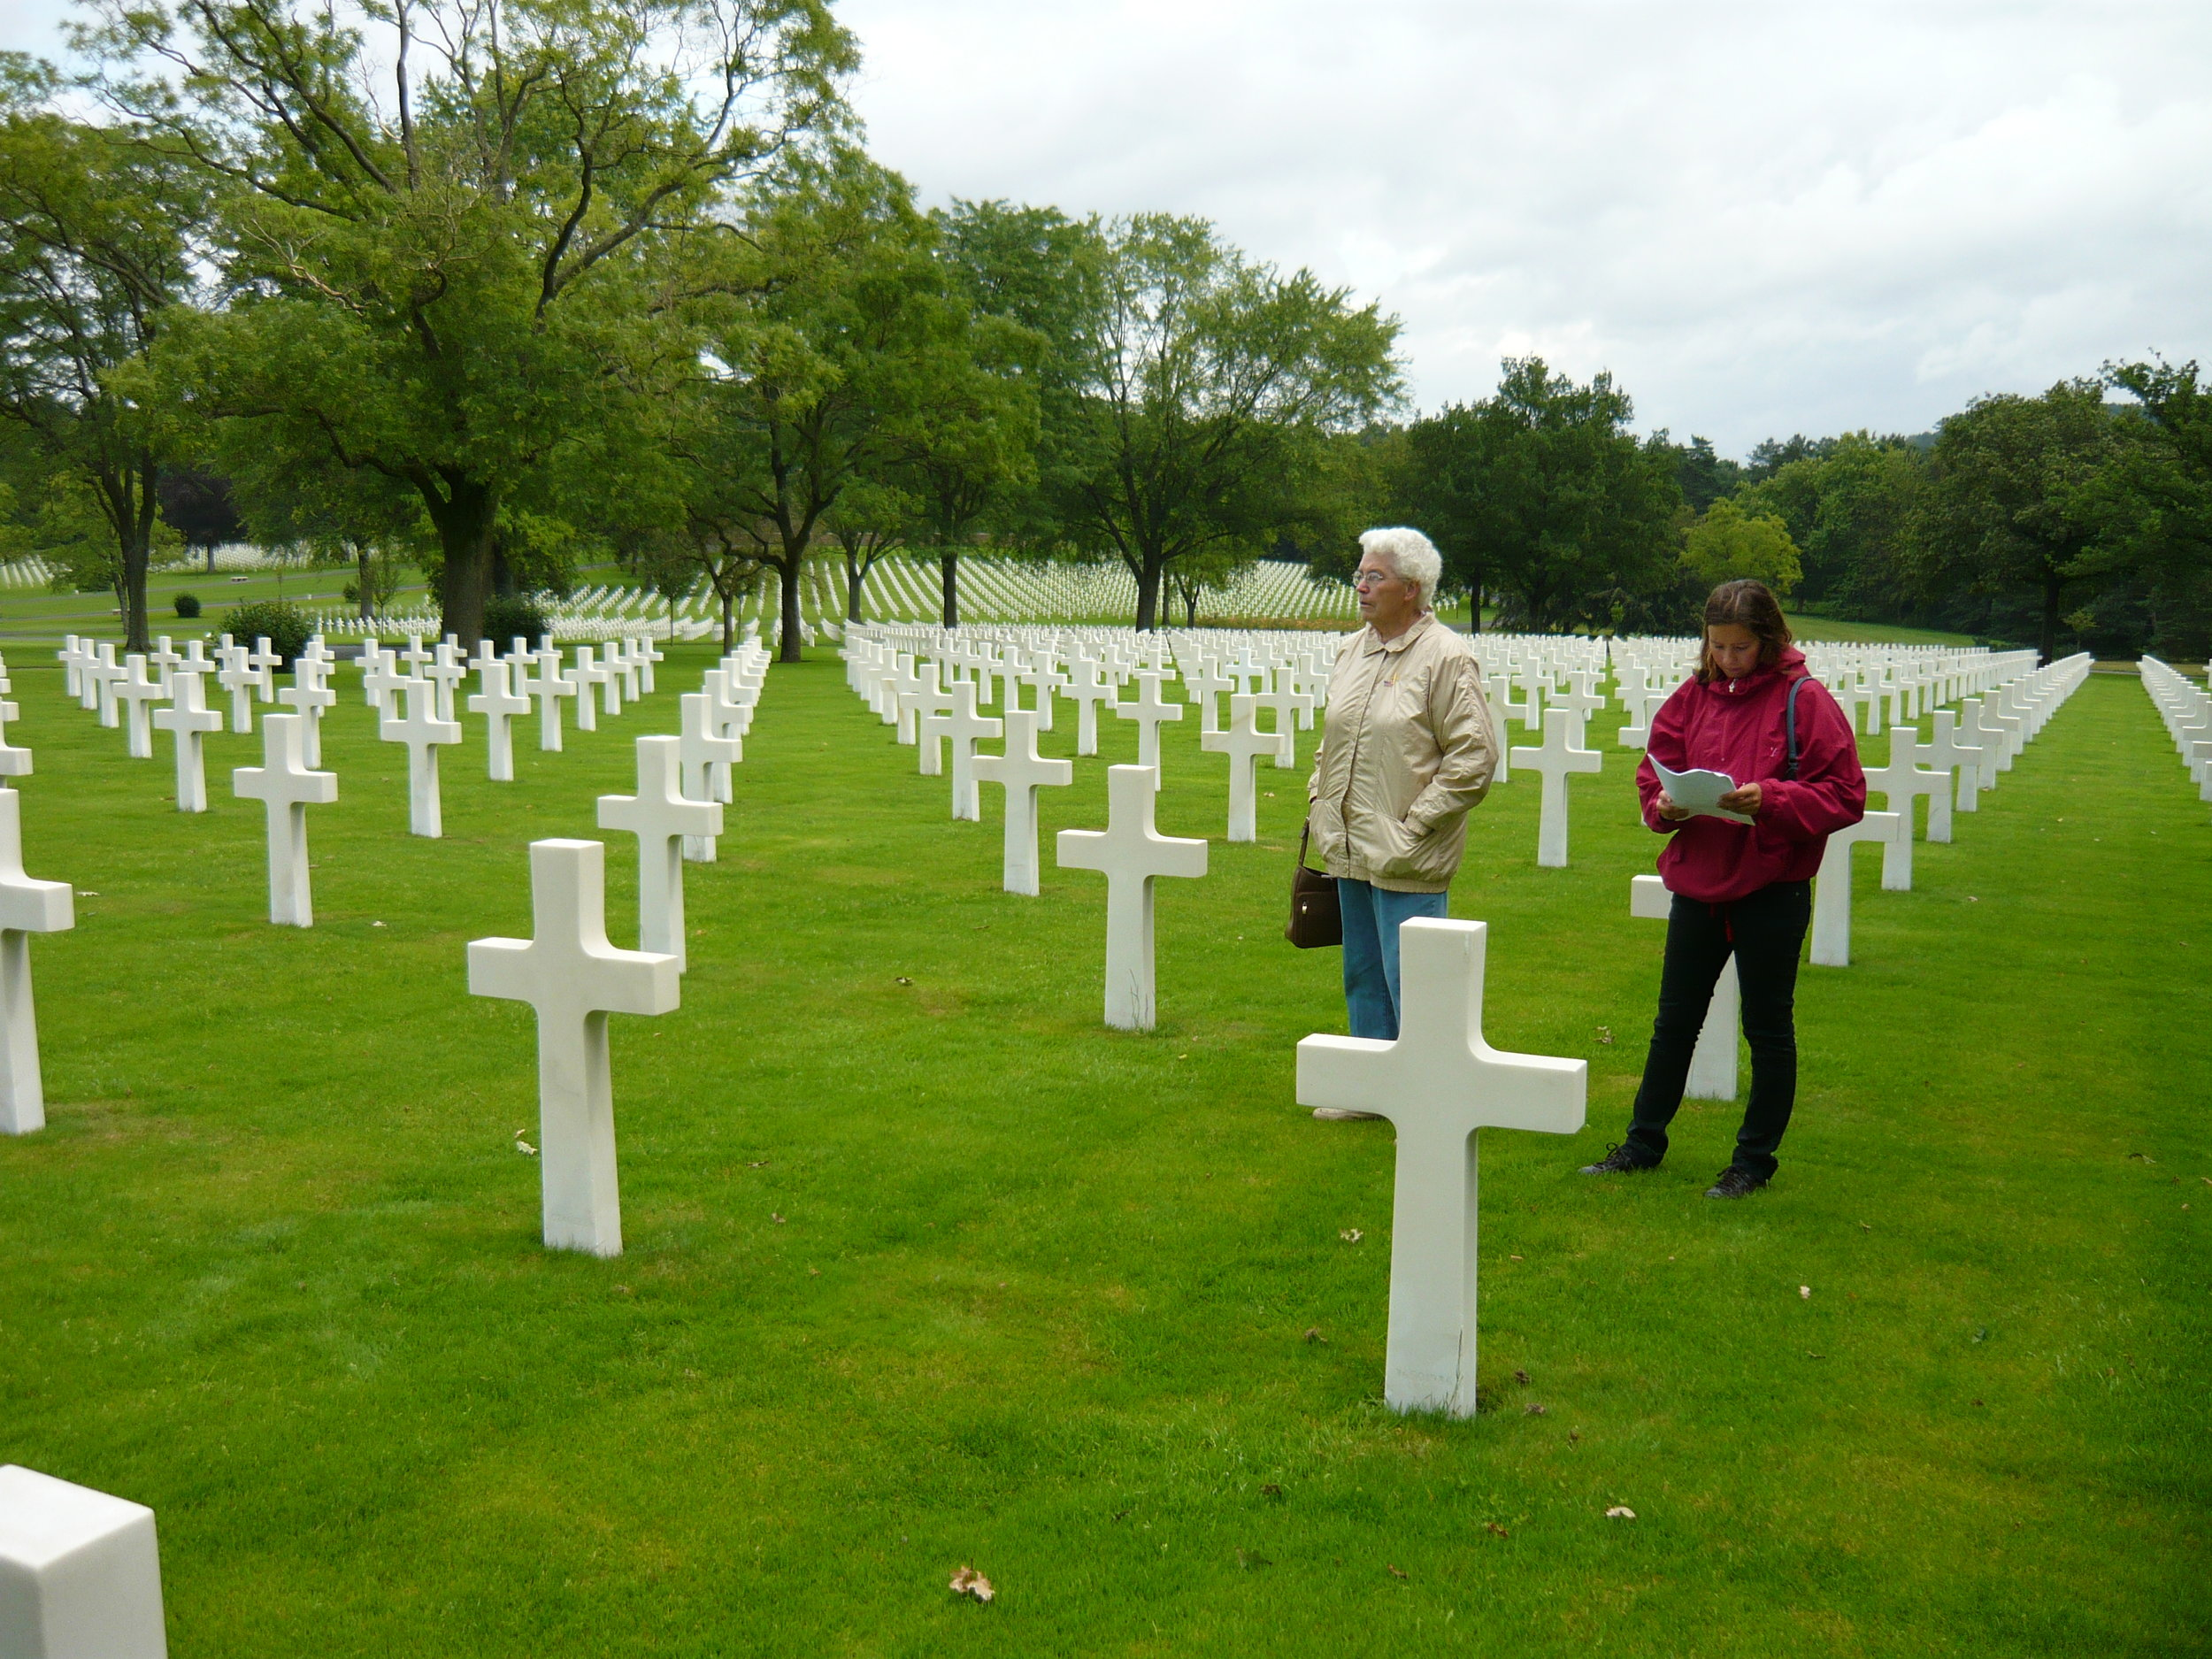 Erlyn at her brother's grave. Sophie Haelbig, Eb's daughter, accompanies her in this photo.